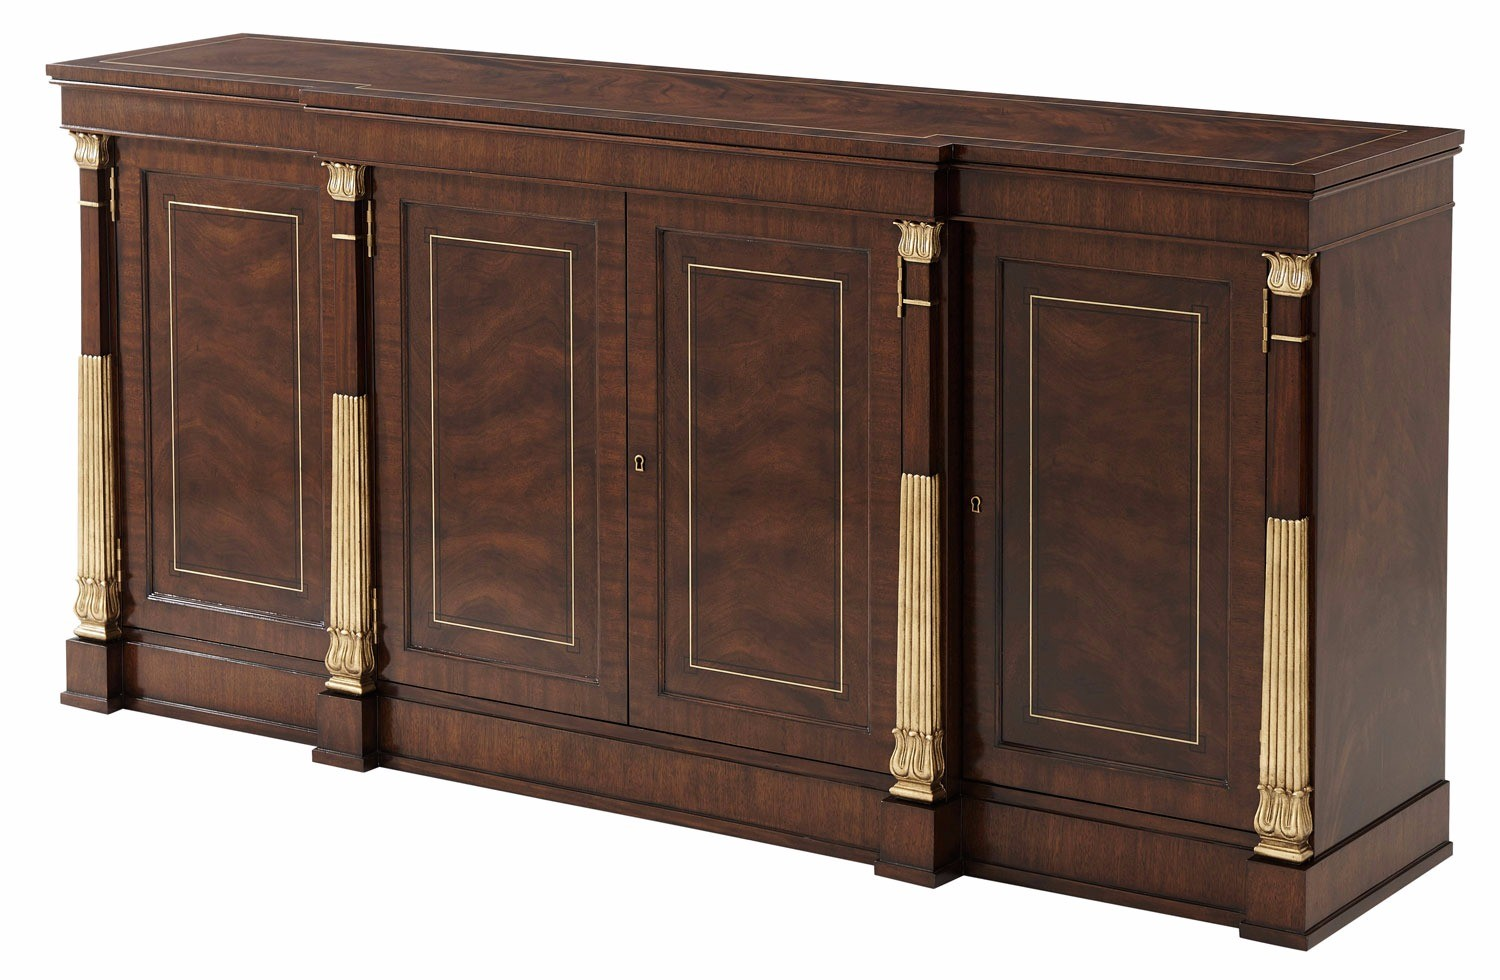 A swirl mahogany veneered and mahogany crossbanded buffet